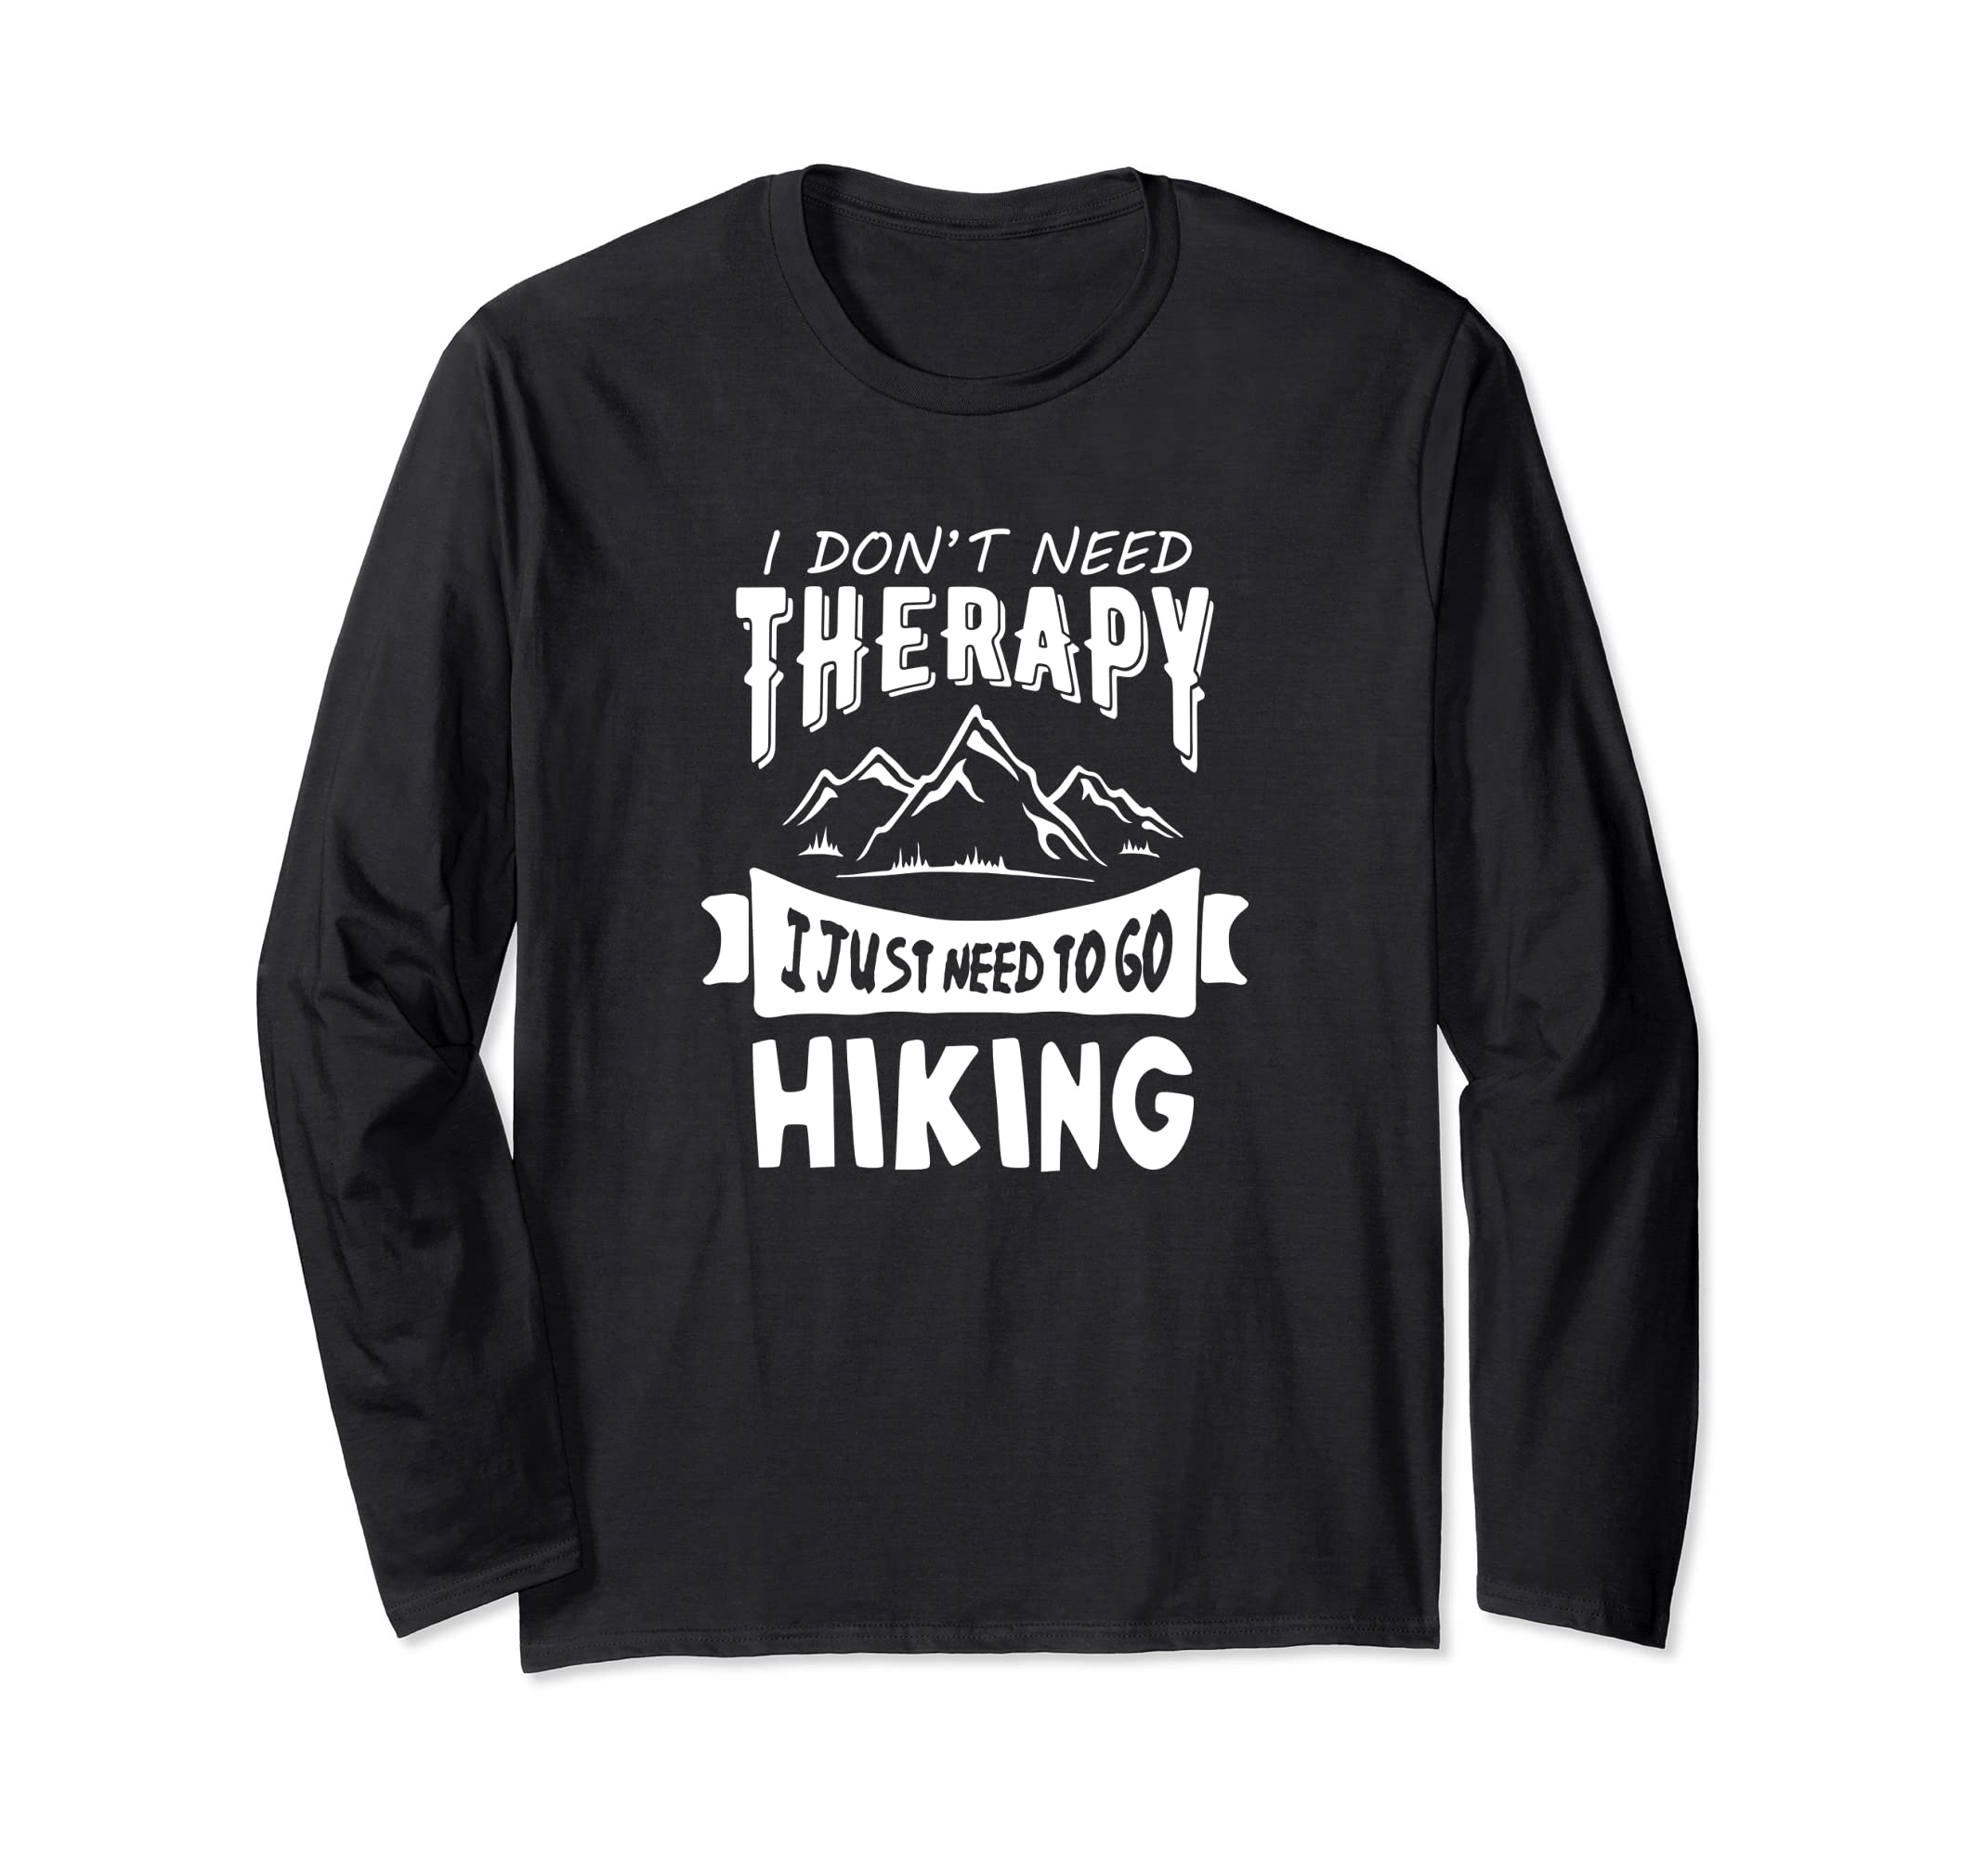 Best Hiking Long Sleeve Shirt Awesome I Don't Need Therapy-ln